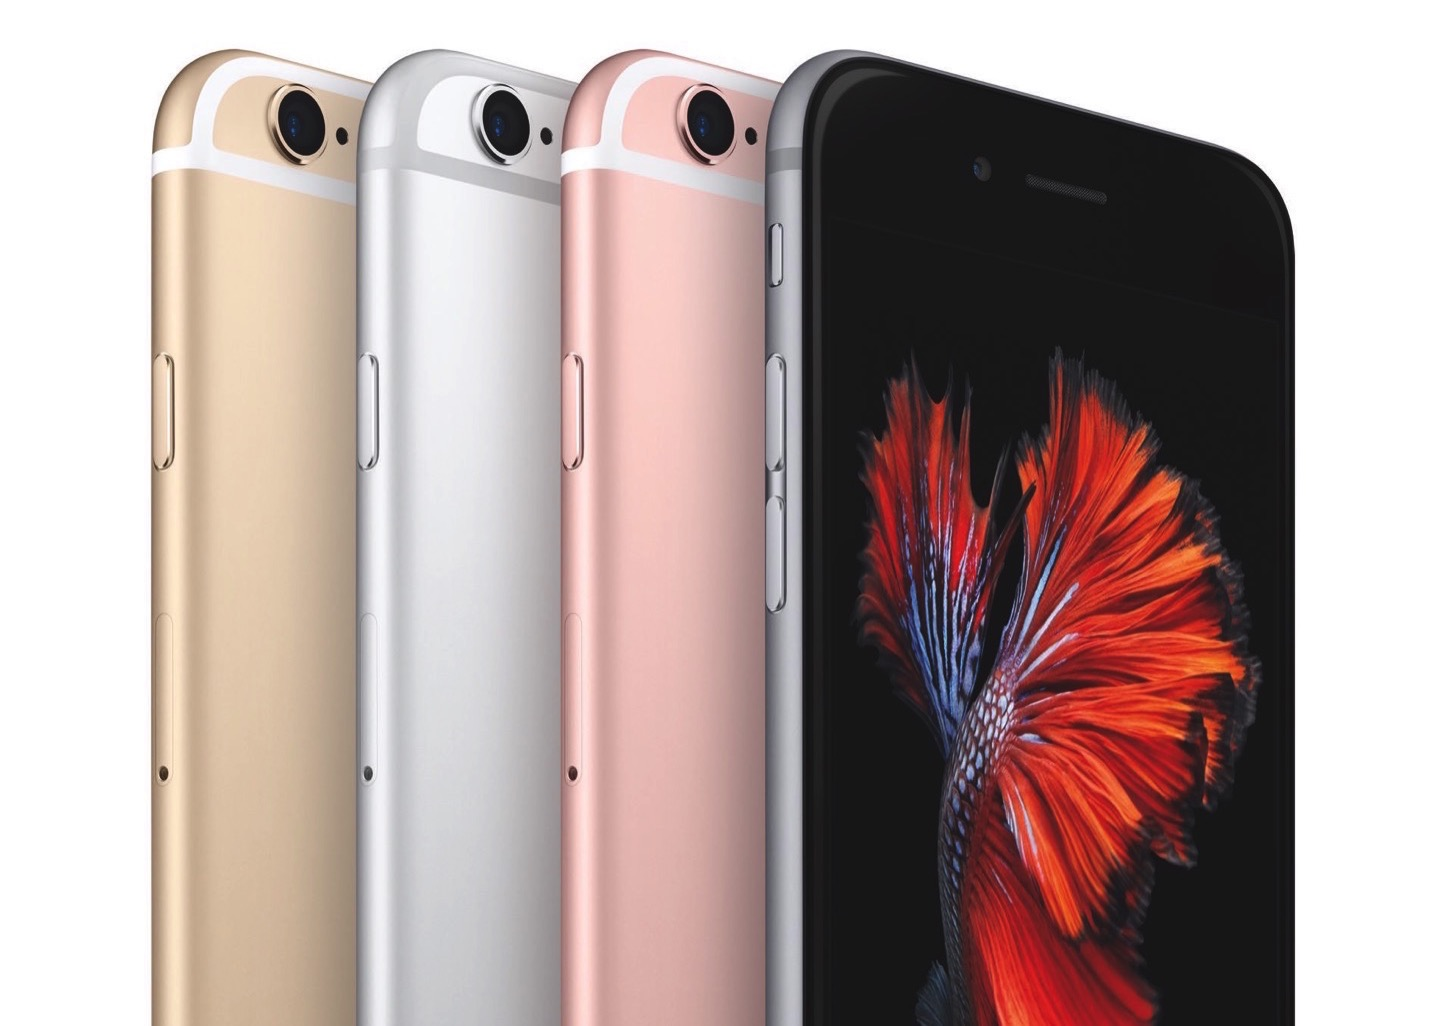 iPhone 6s」と「iPhone 6s Plus...